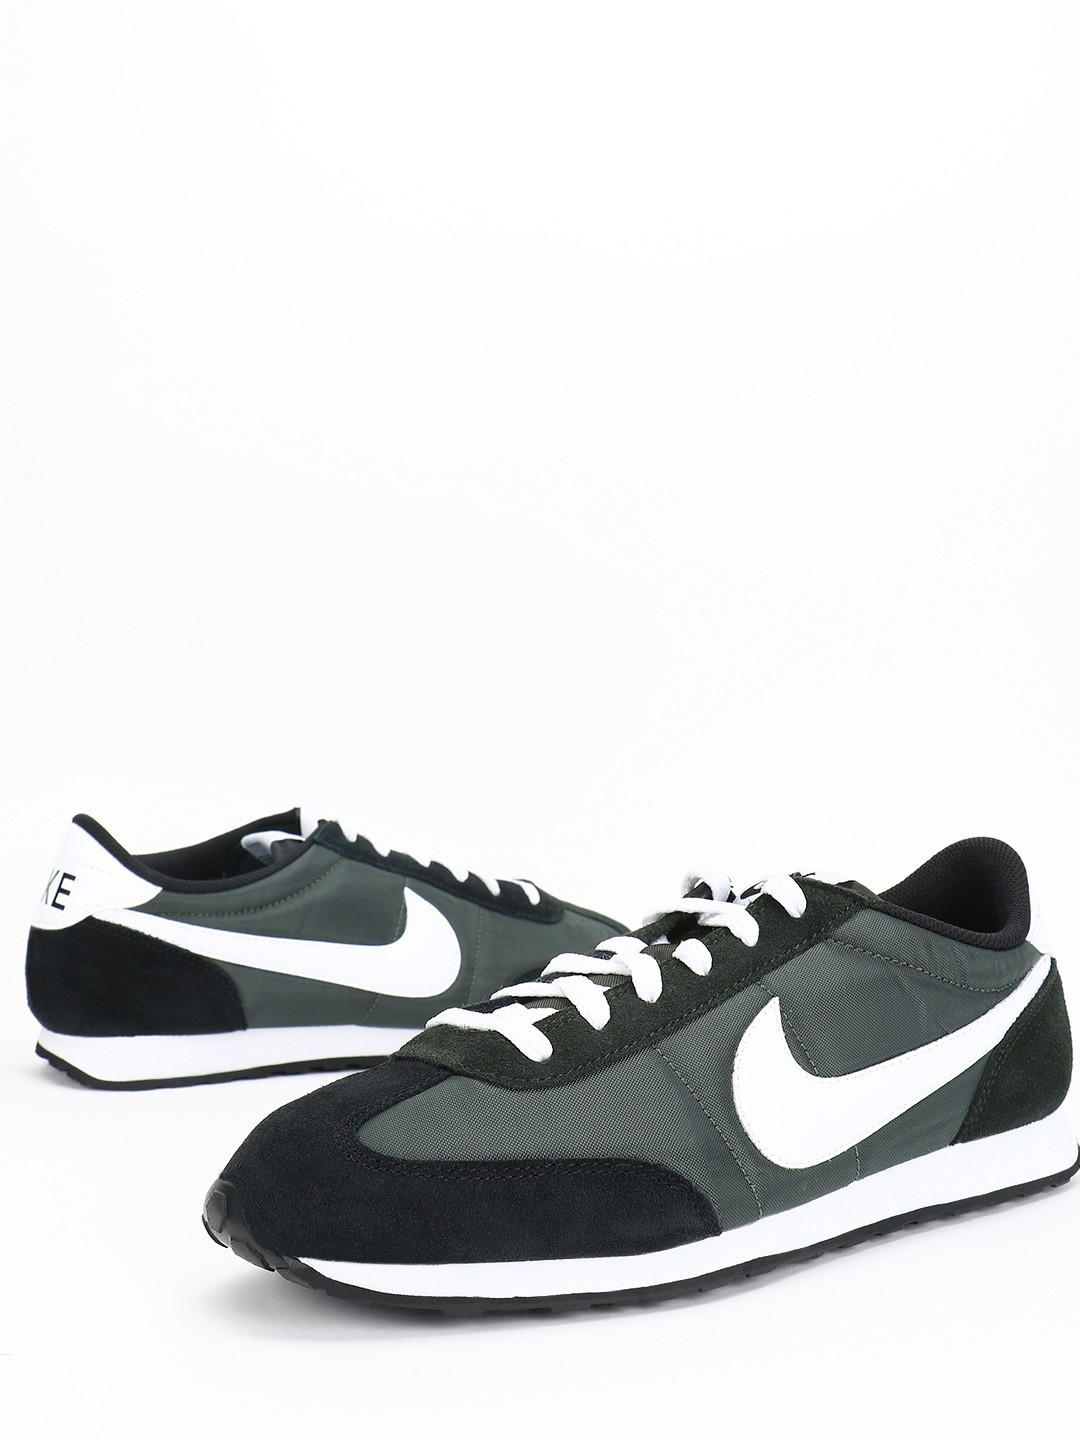 Nike Multi Mach Runner Shoes 1